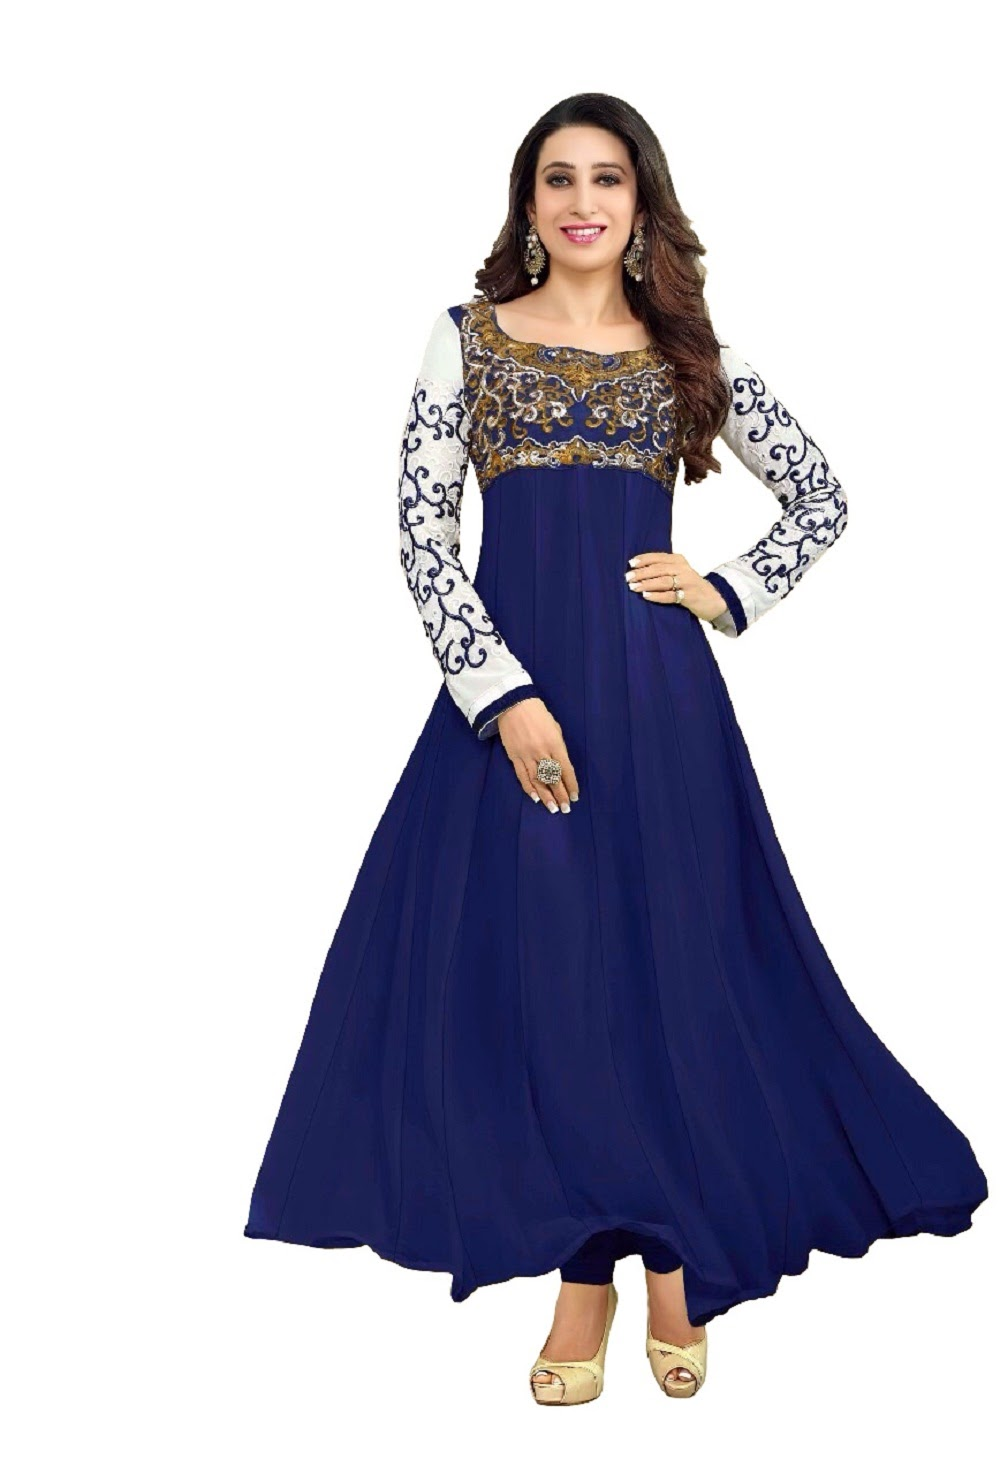 Indian Dresses New Fashion Just At Rs 1599 Contect 8758772122 Free Shiping Any Where In India